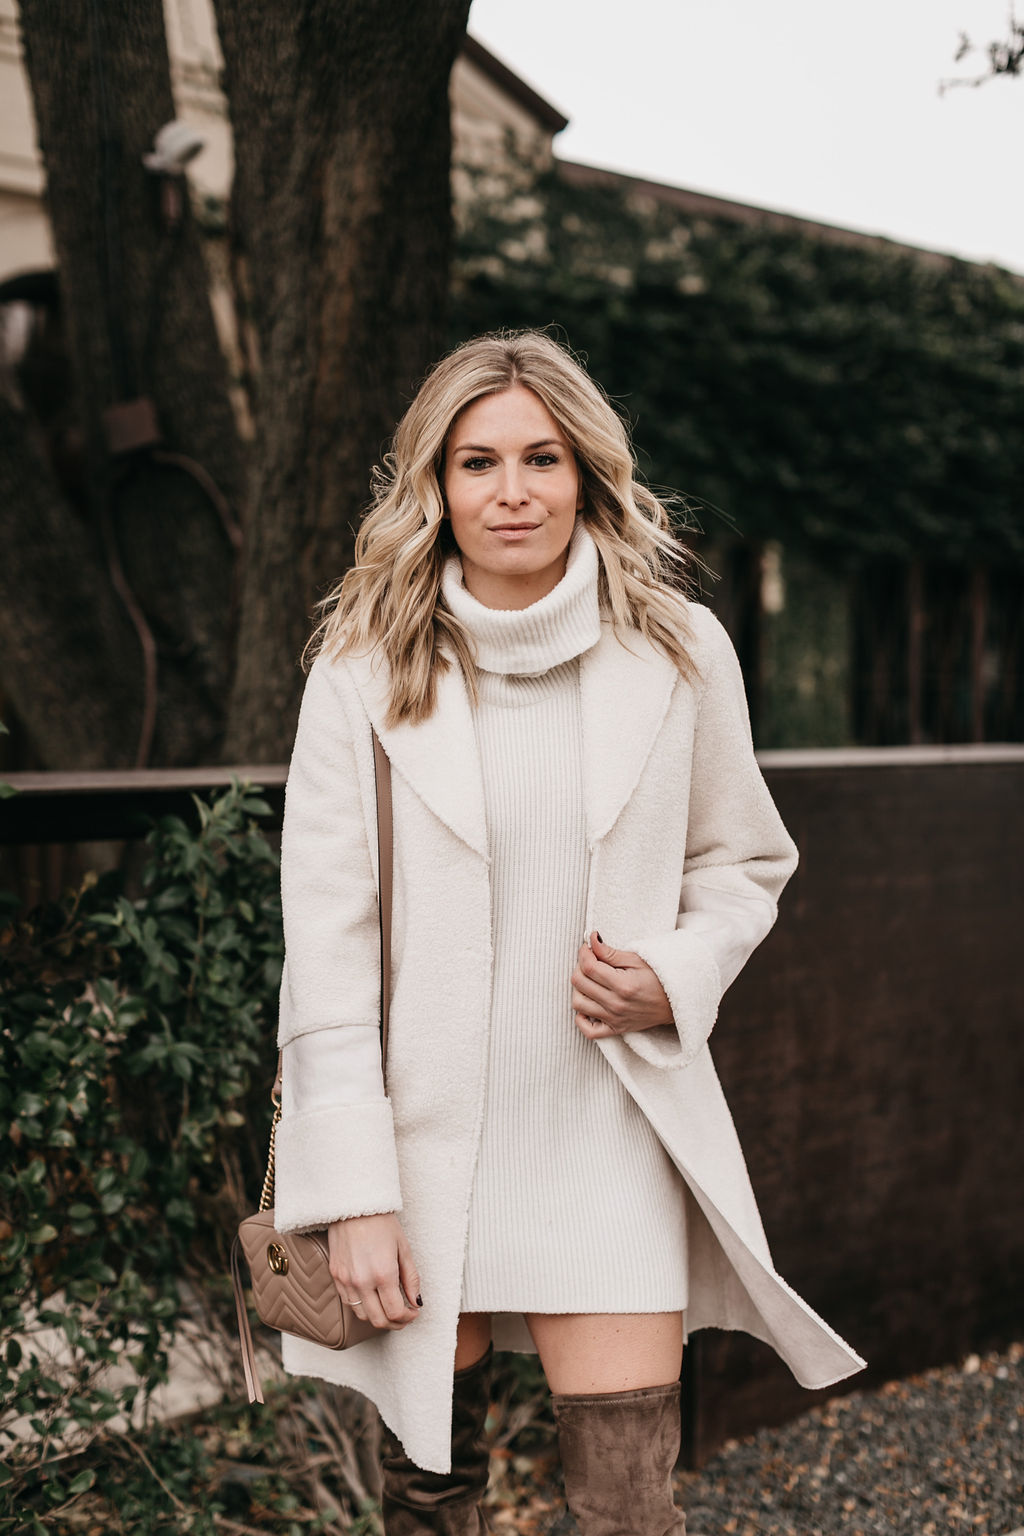 WINTER WHITE COATS - ONE SMALL BLONDE